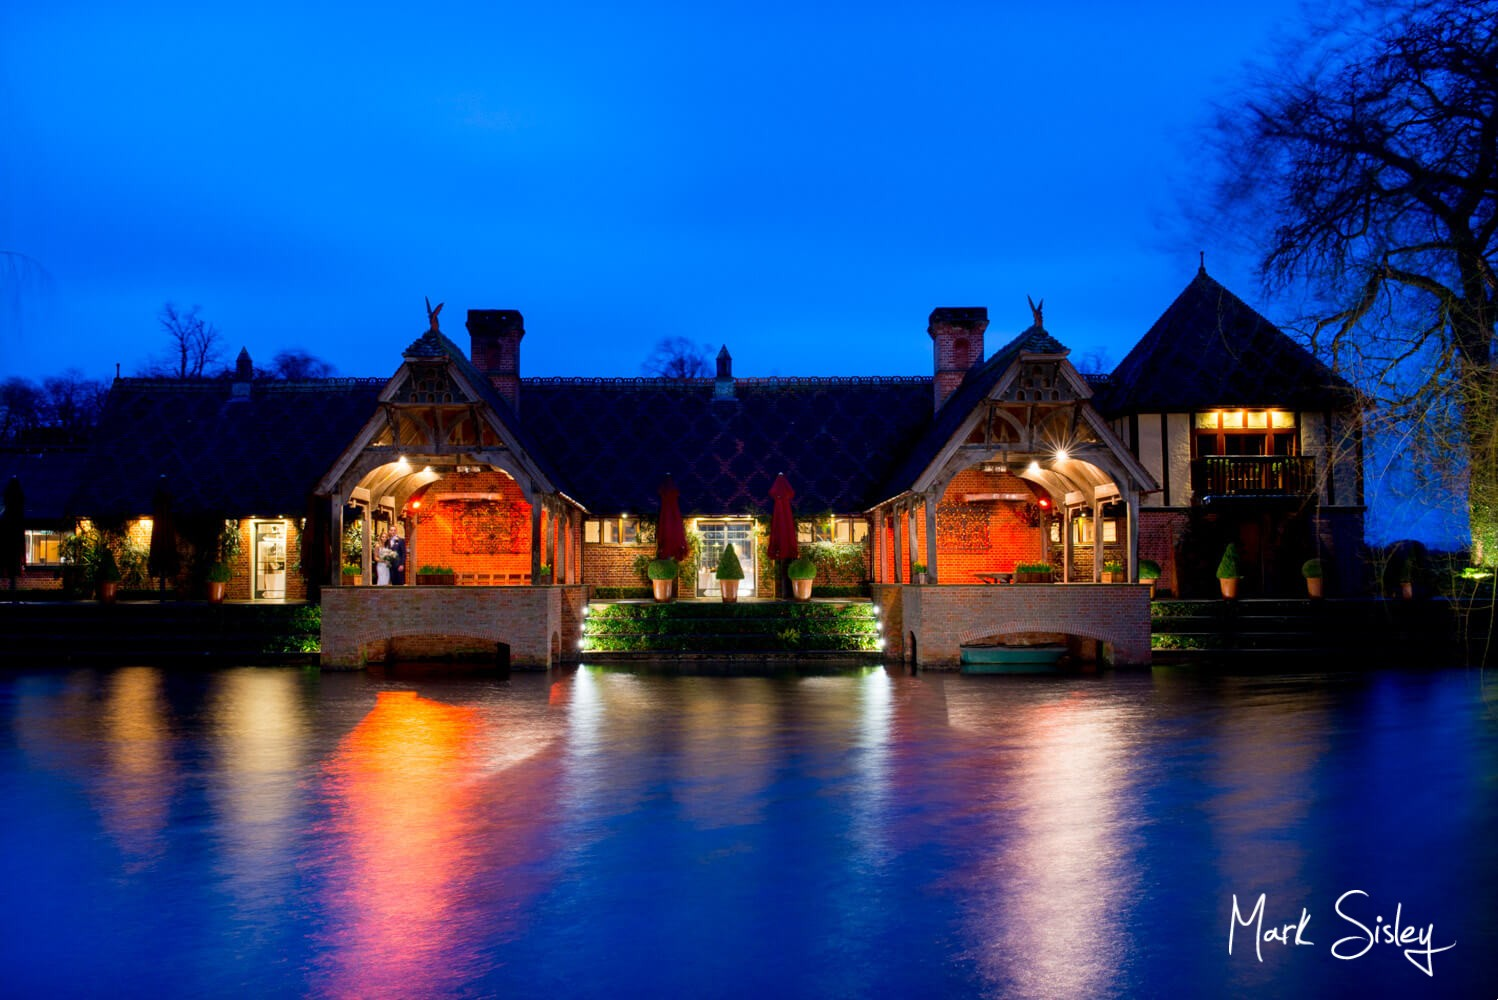 The bride & groom across the water for their Waddesdon Manor wedding during Storm Dennis